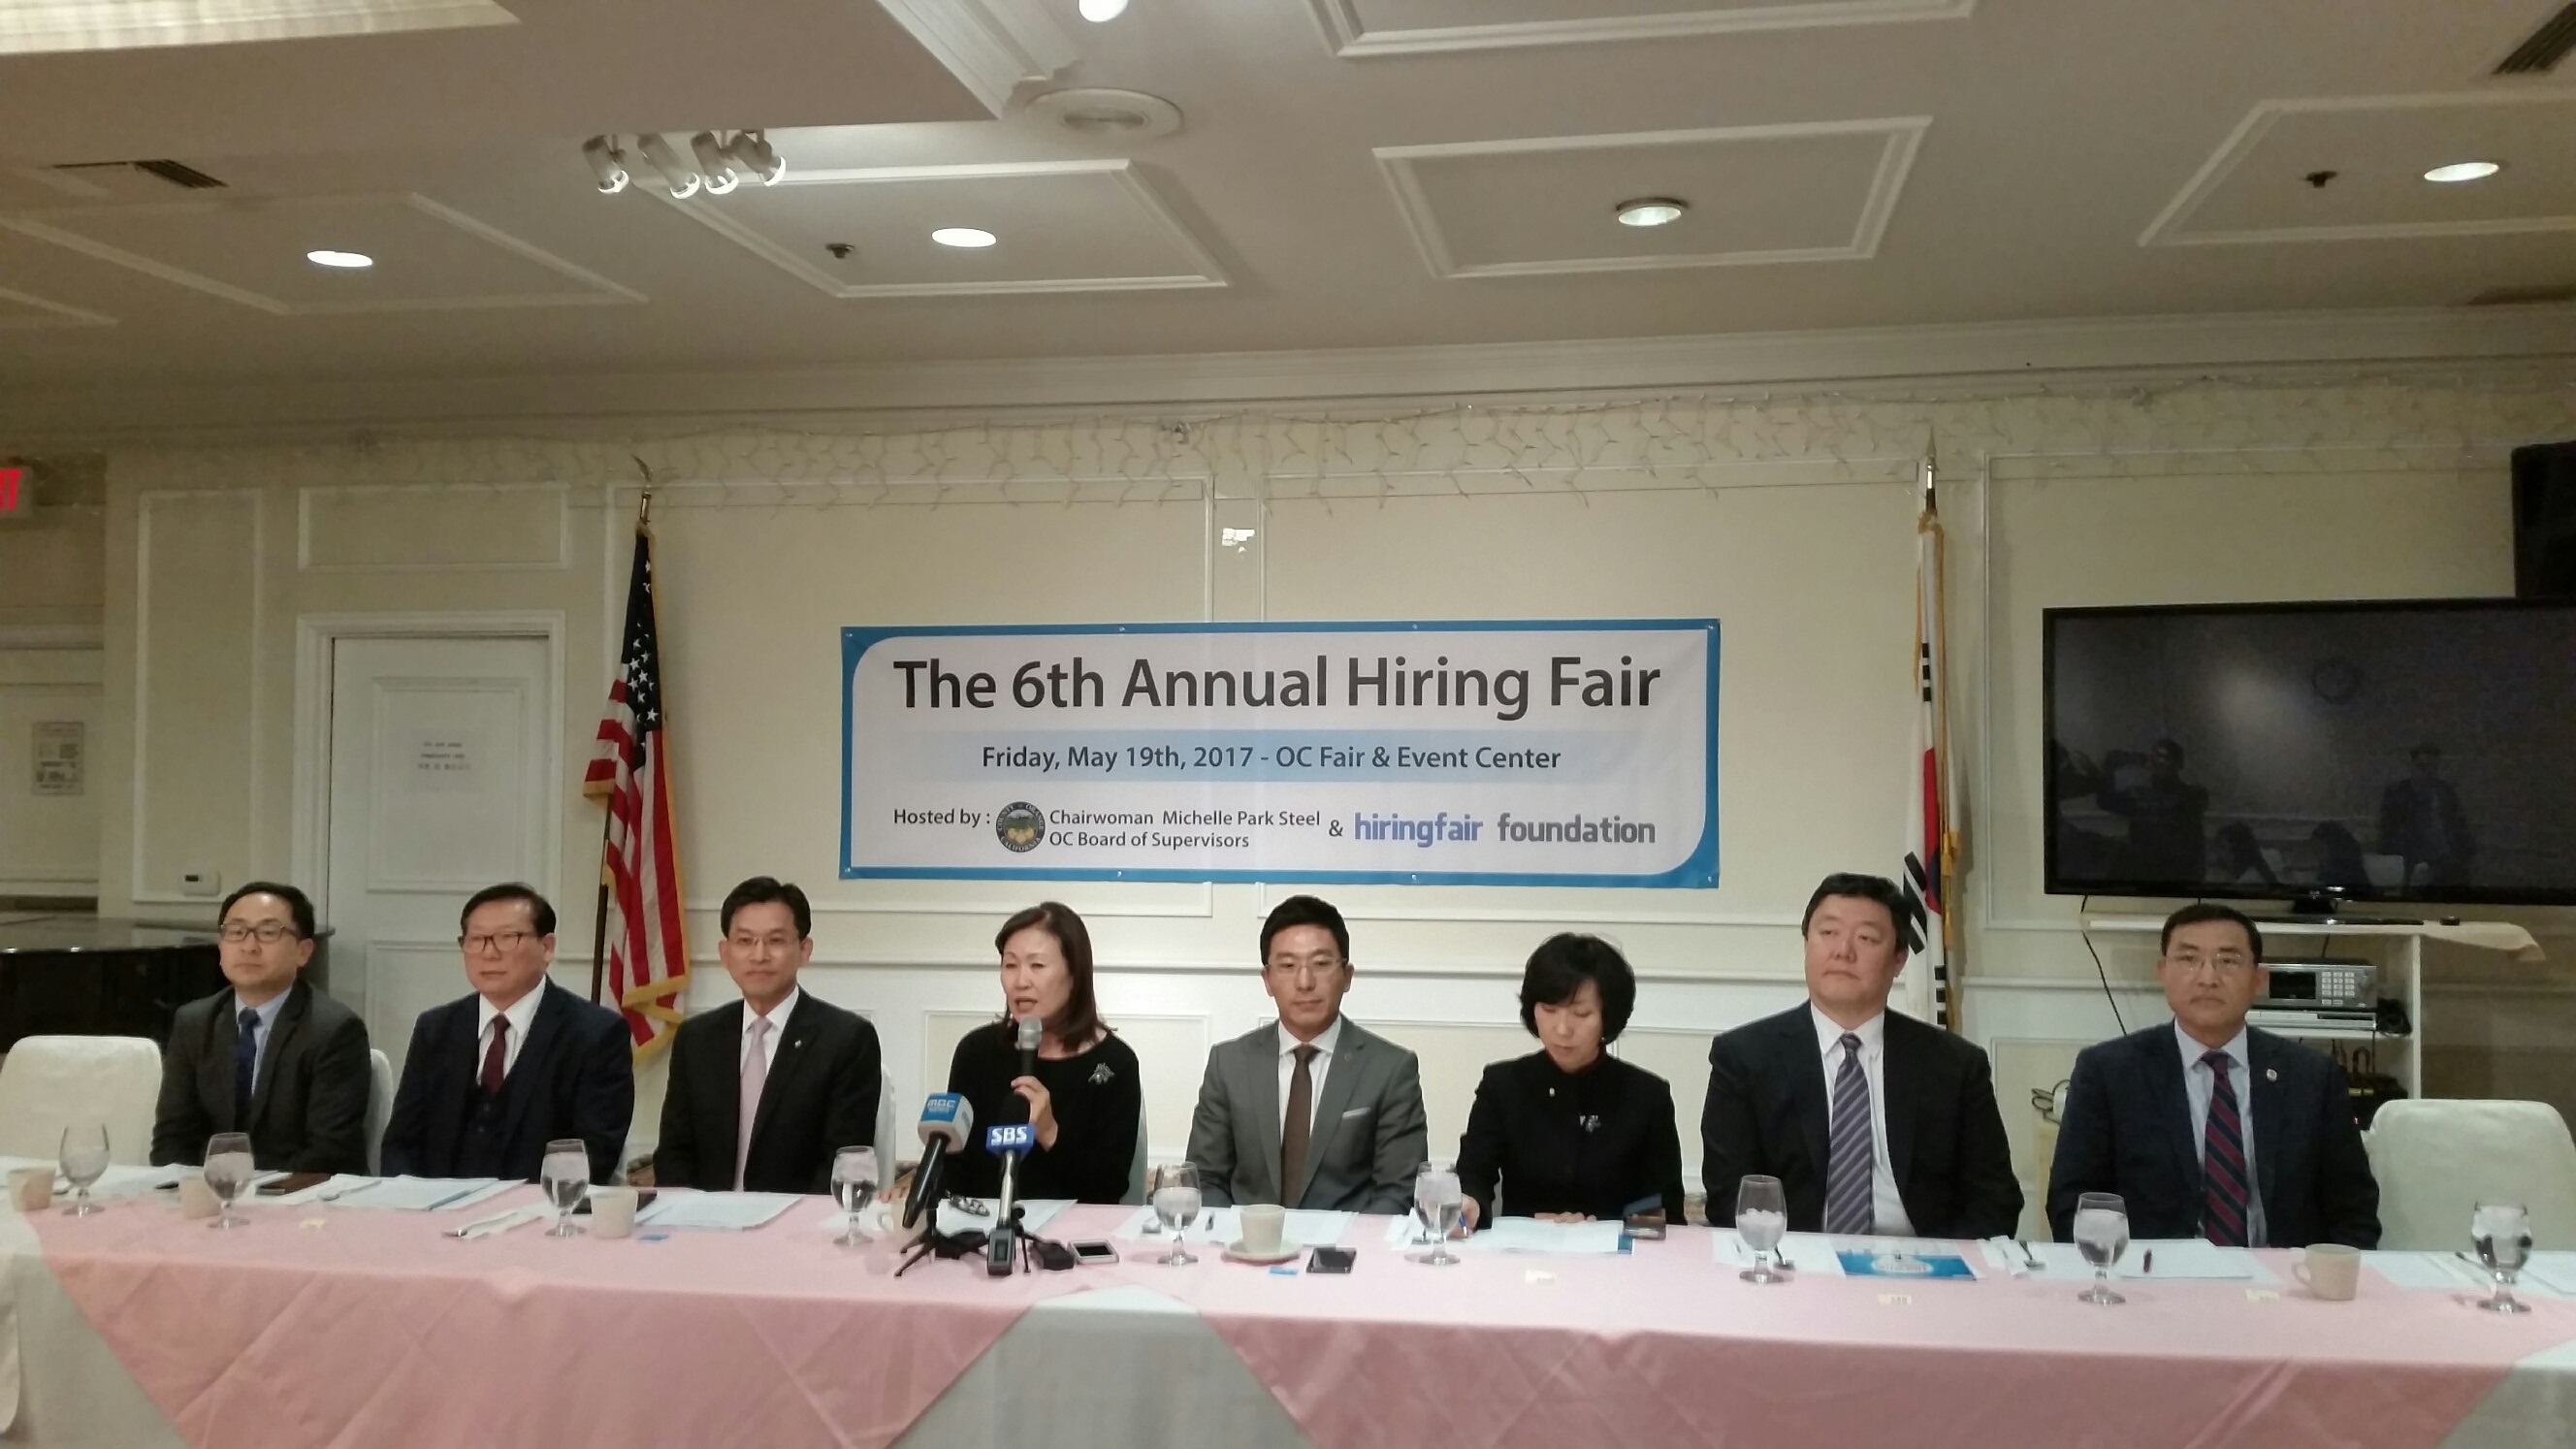 Nonprofit group Hiring Fair Foundation is announcing the plan to host a job fair in Orange County in May. Orange County Supervisor Commission's Michelle Steel (fourth from left) is giving an introductory speech at the press conference.